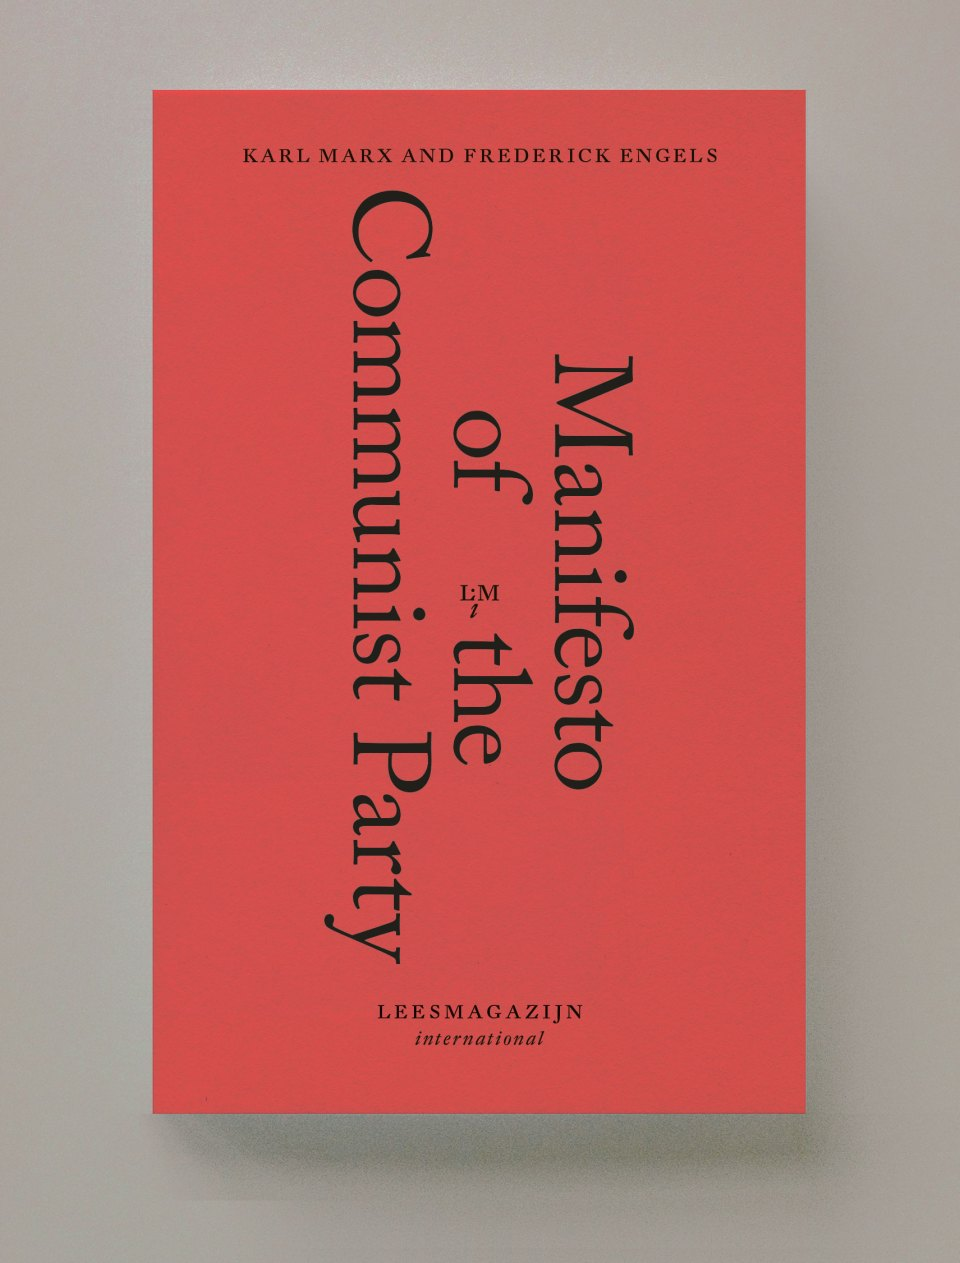 Manifest Of The Communist Party Karl Marx And Frederick